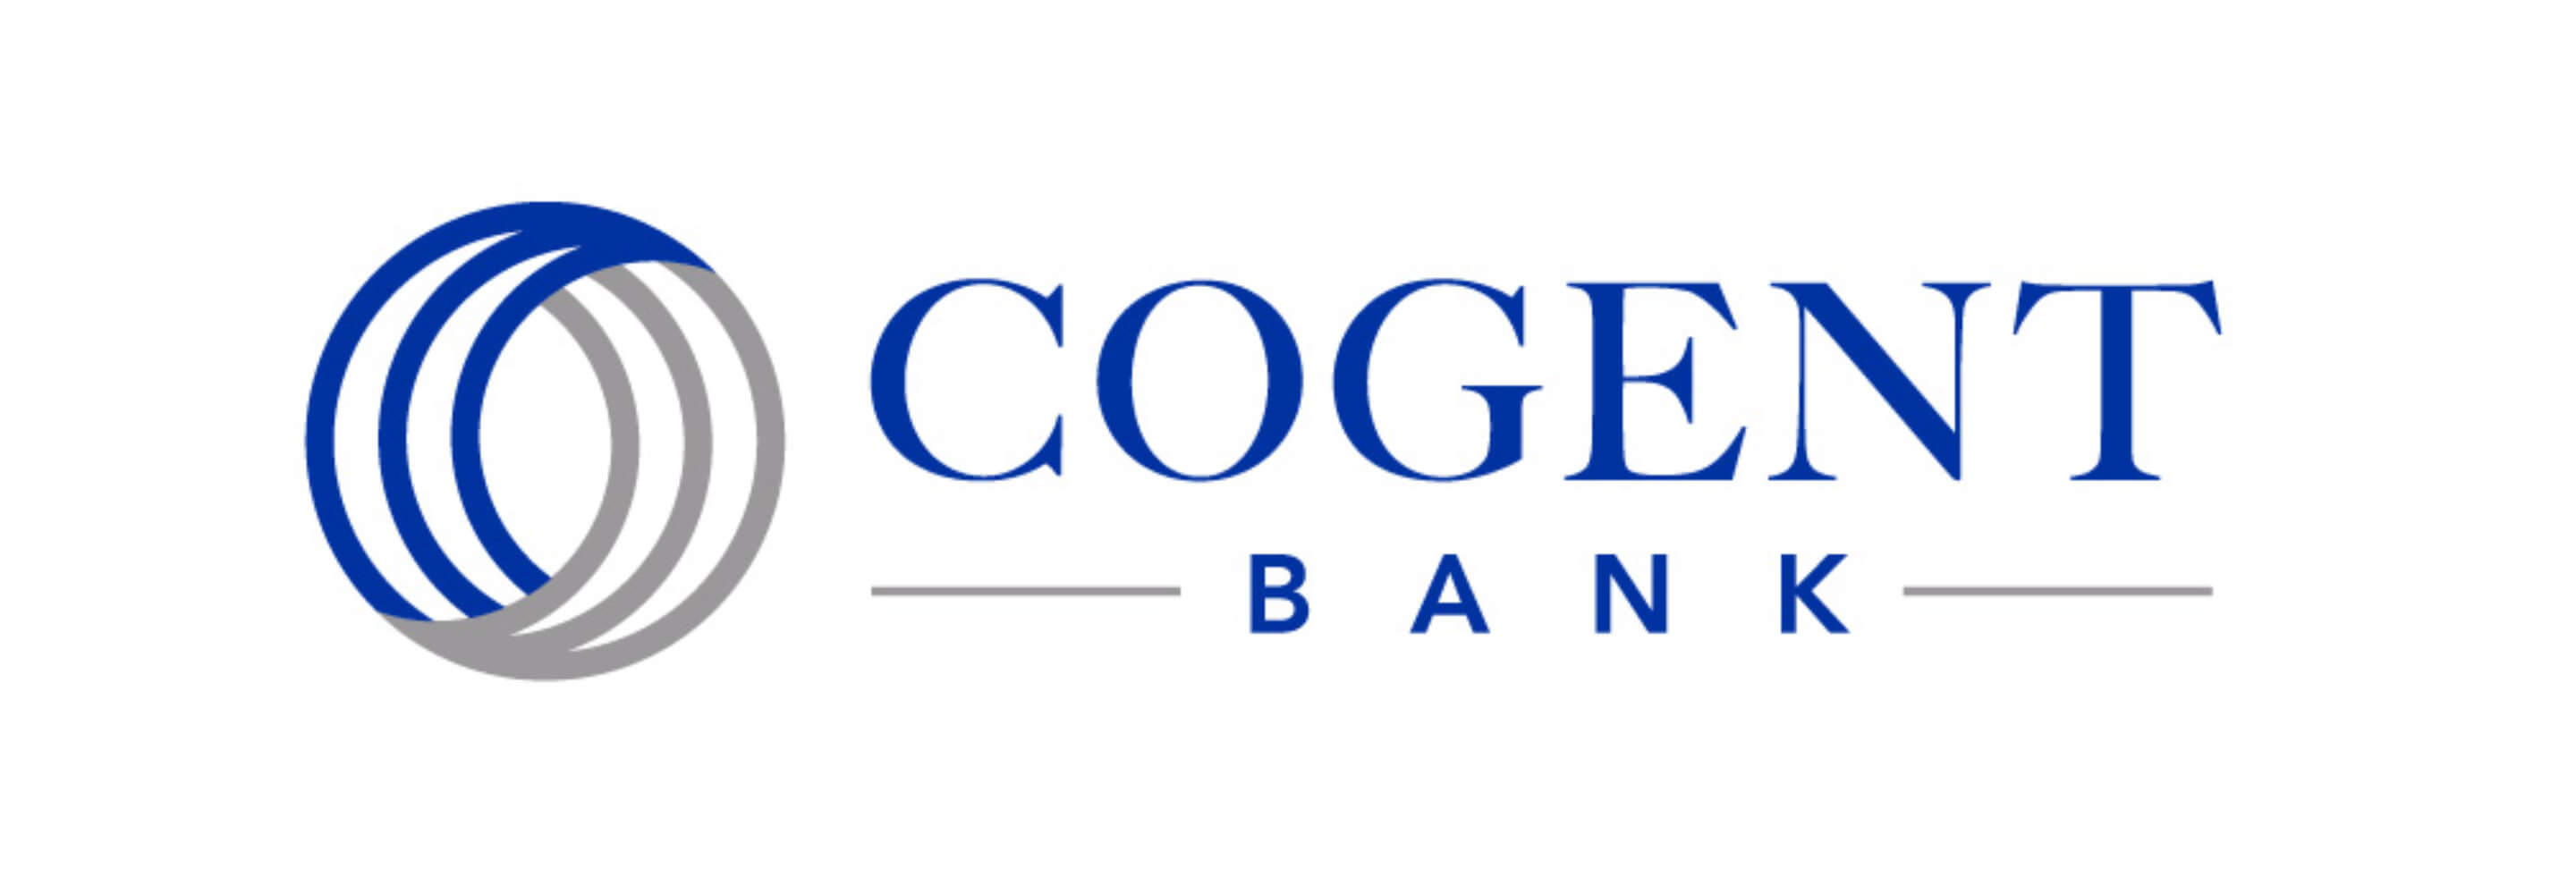 Cogent Bank Logo Design White